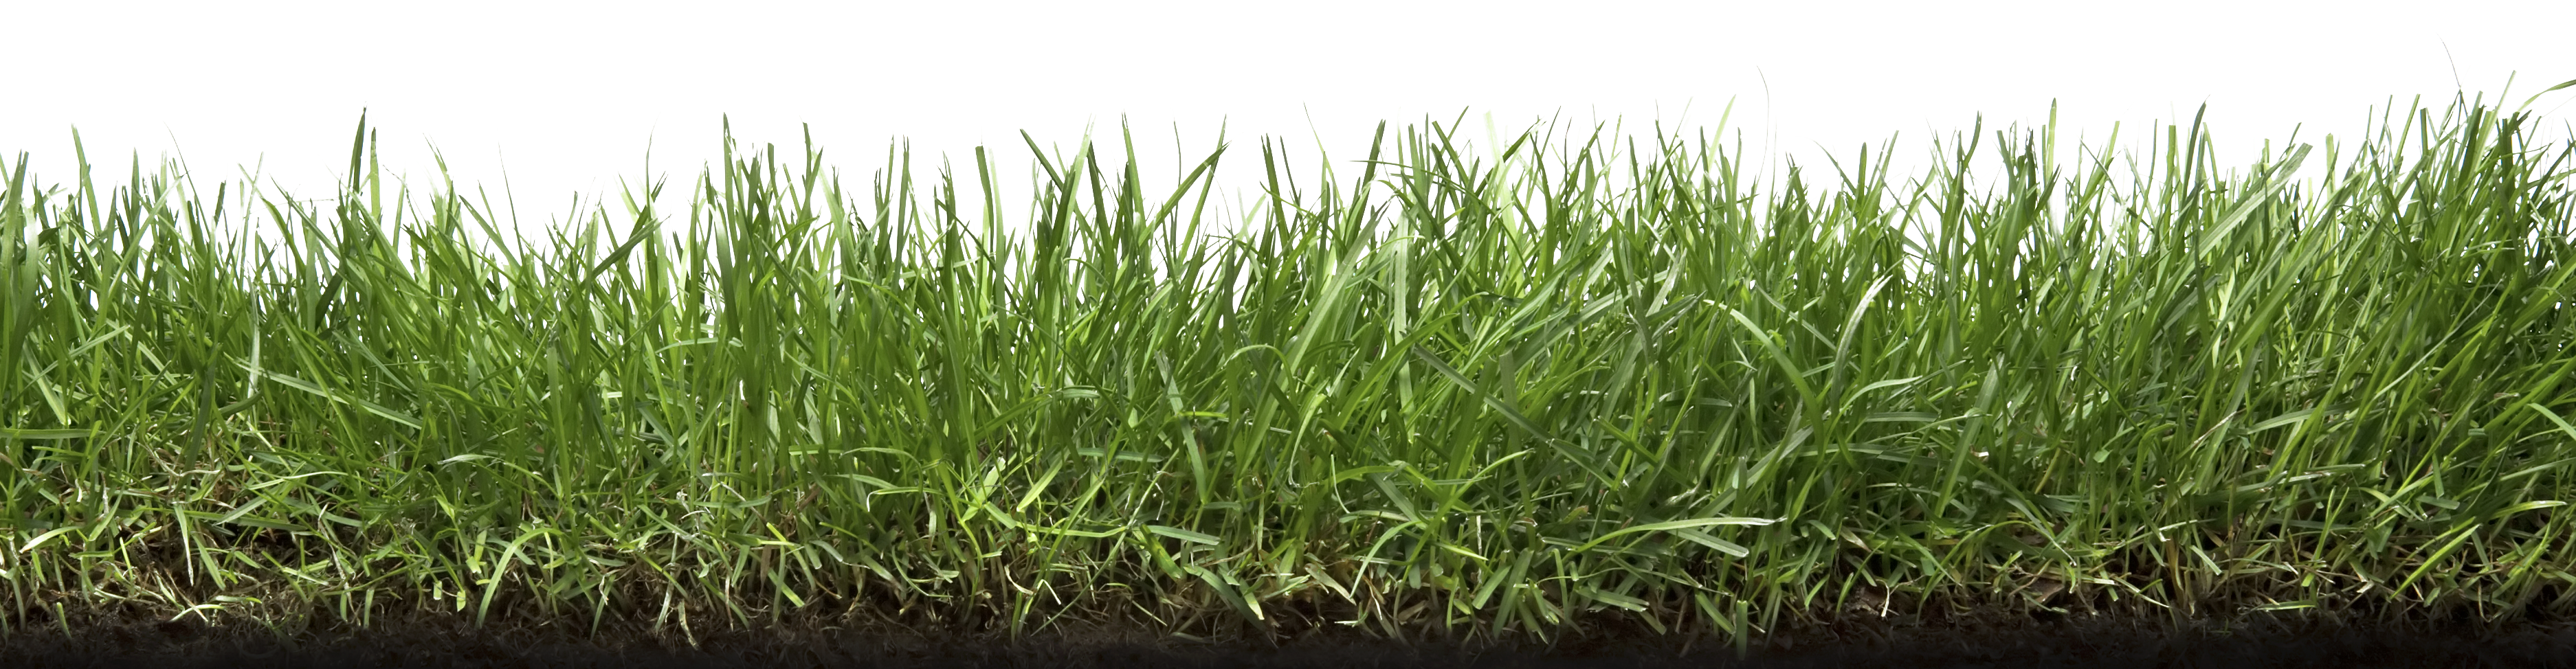 grass with roots